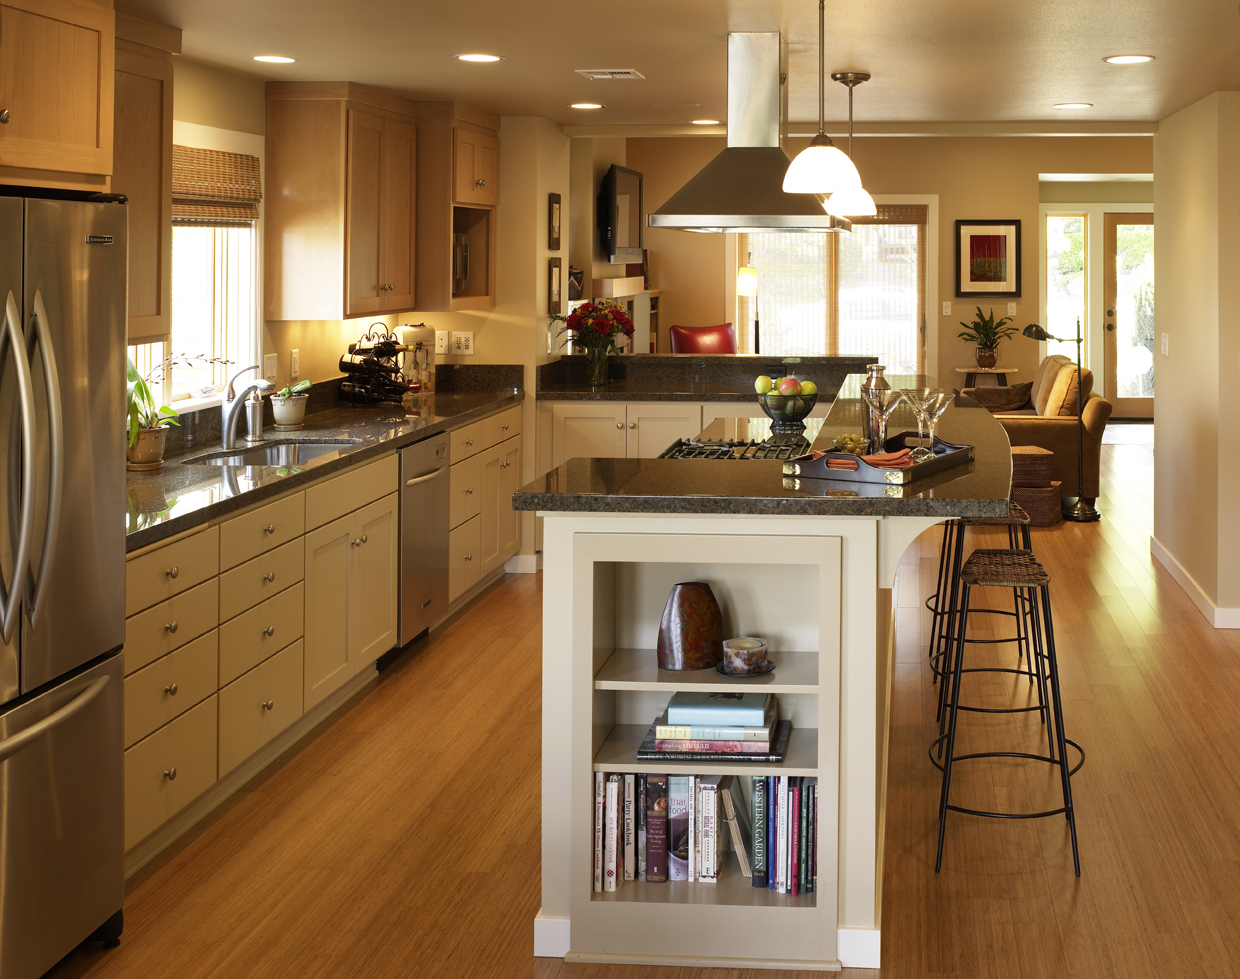 FST_MULTIFAMILY_KITCHEN_SMALL